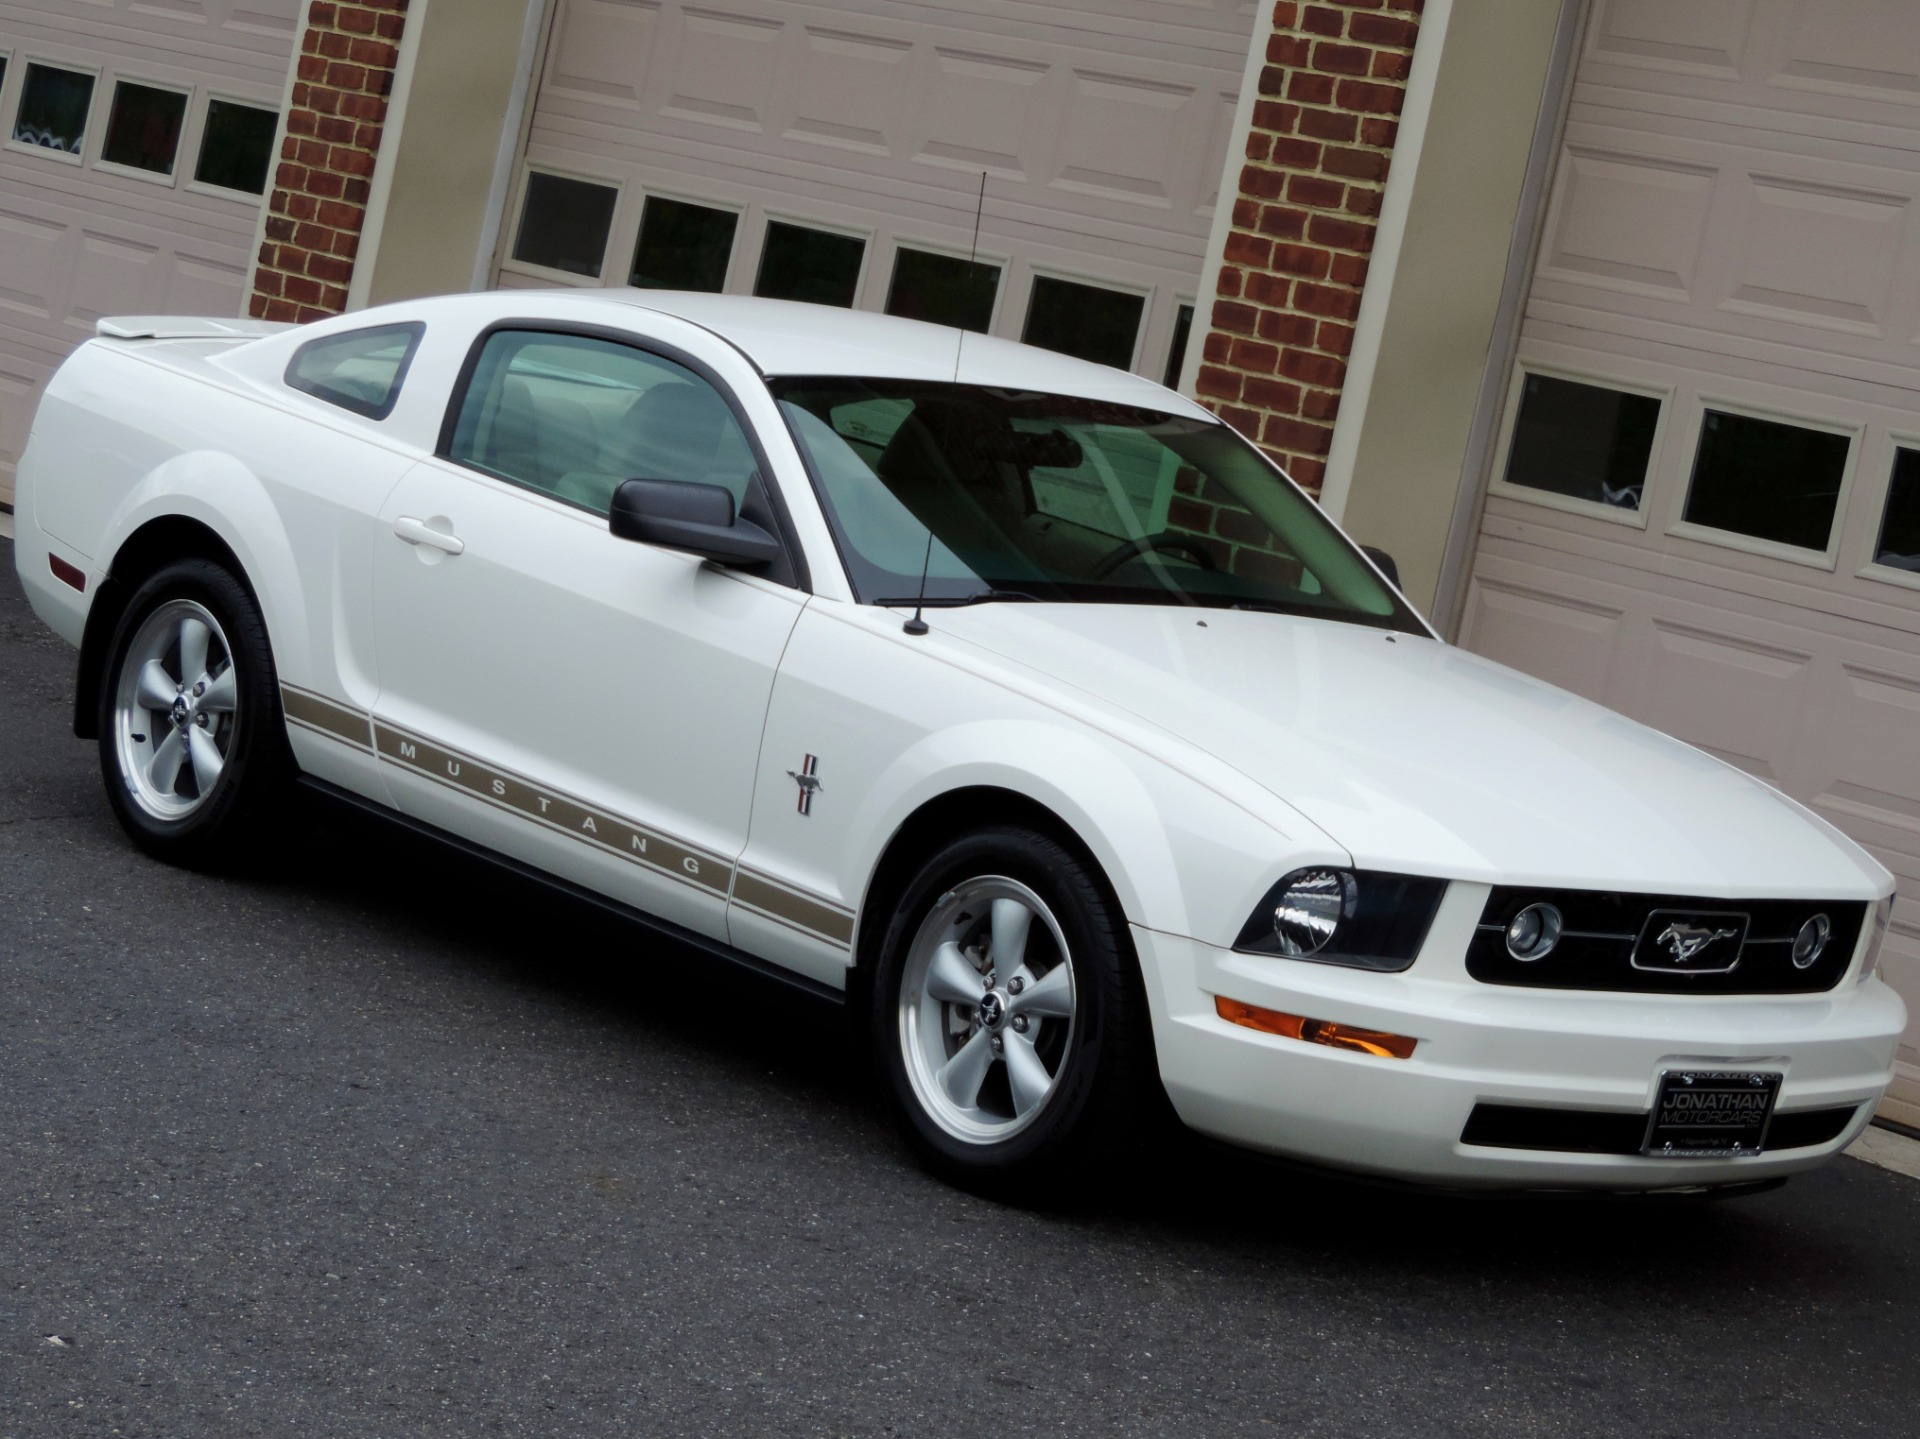 Ford Dealers Nj >> 2007 Ford Mustang V6 Premium - Leather - Low Mileage - Fully Serviced Stock # 345842 for sale ...